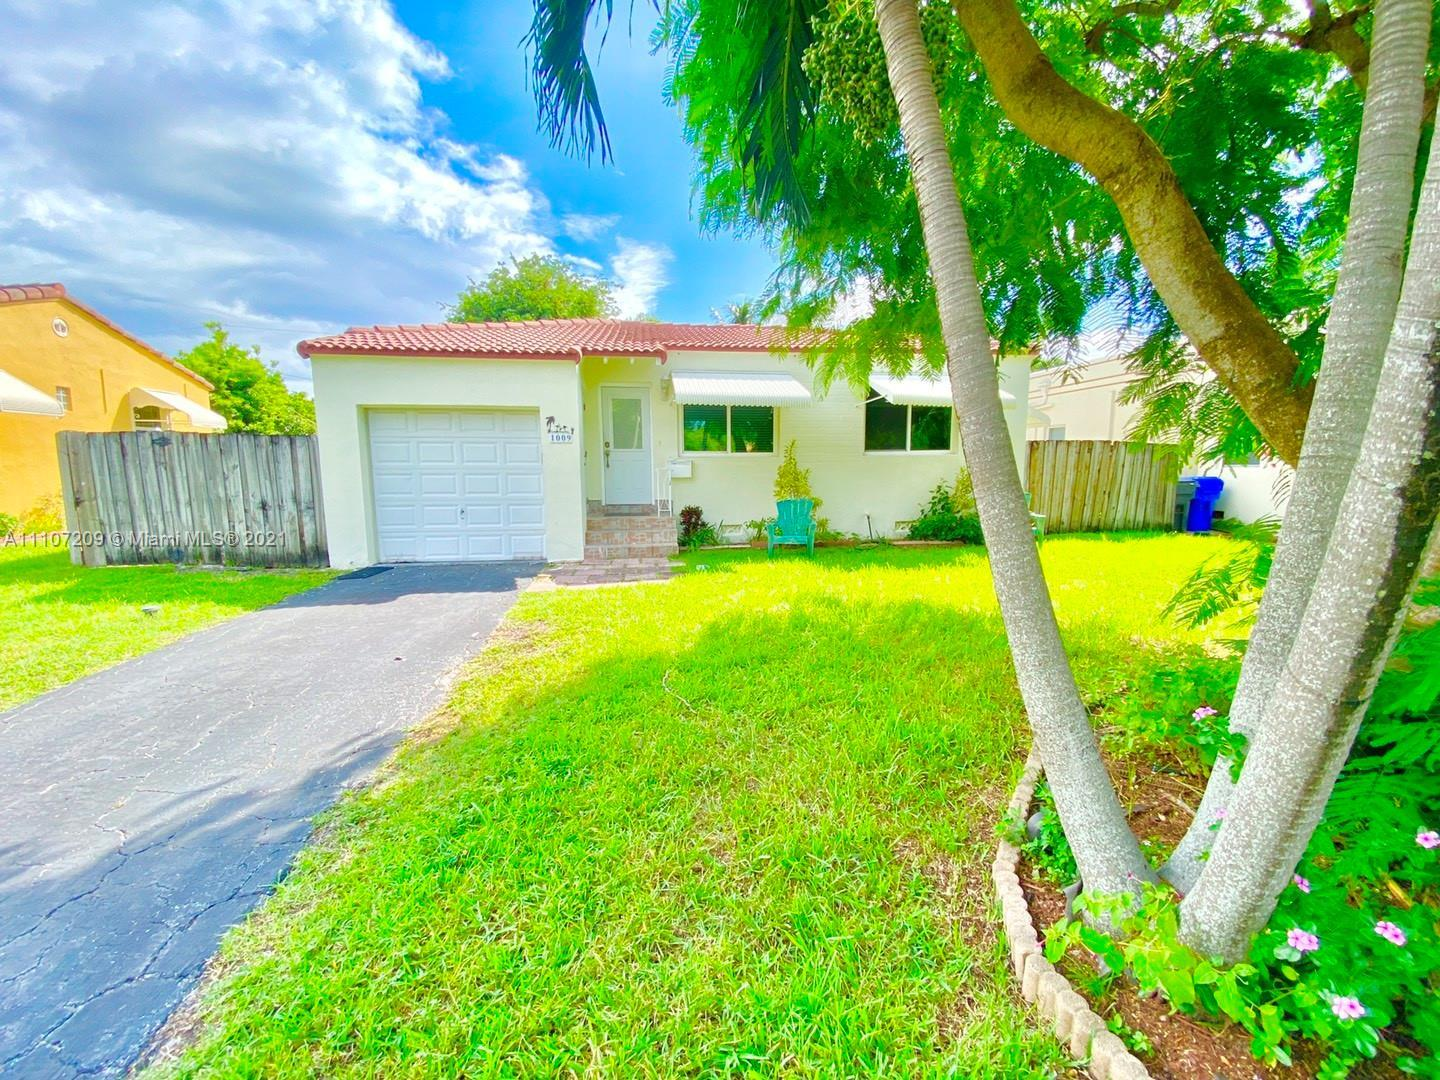 Location is everything in this beautiful neighborhood located in East Hollywood. Walking distance fr